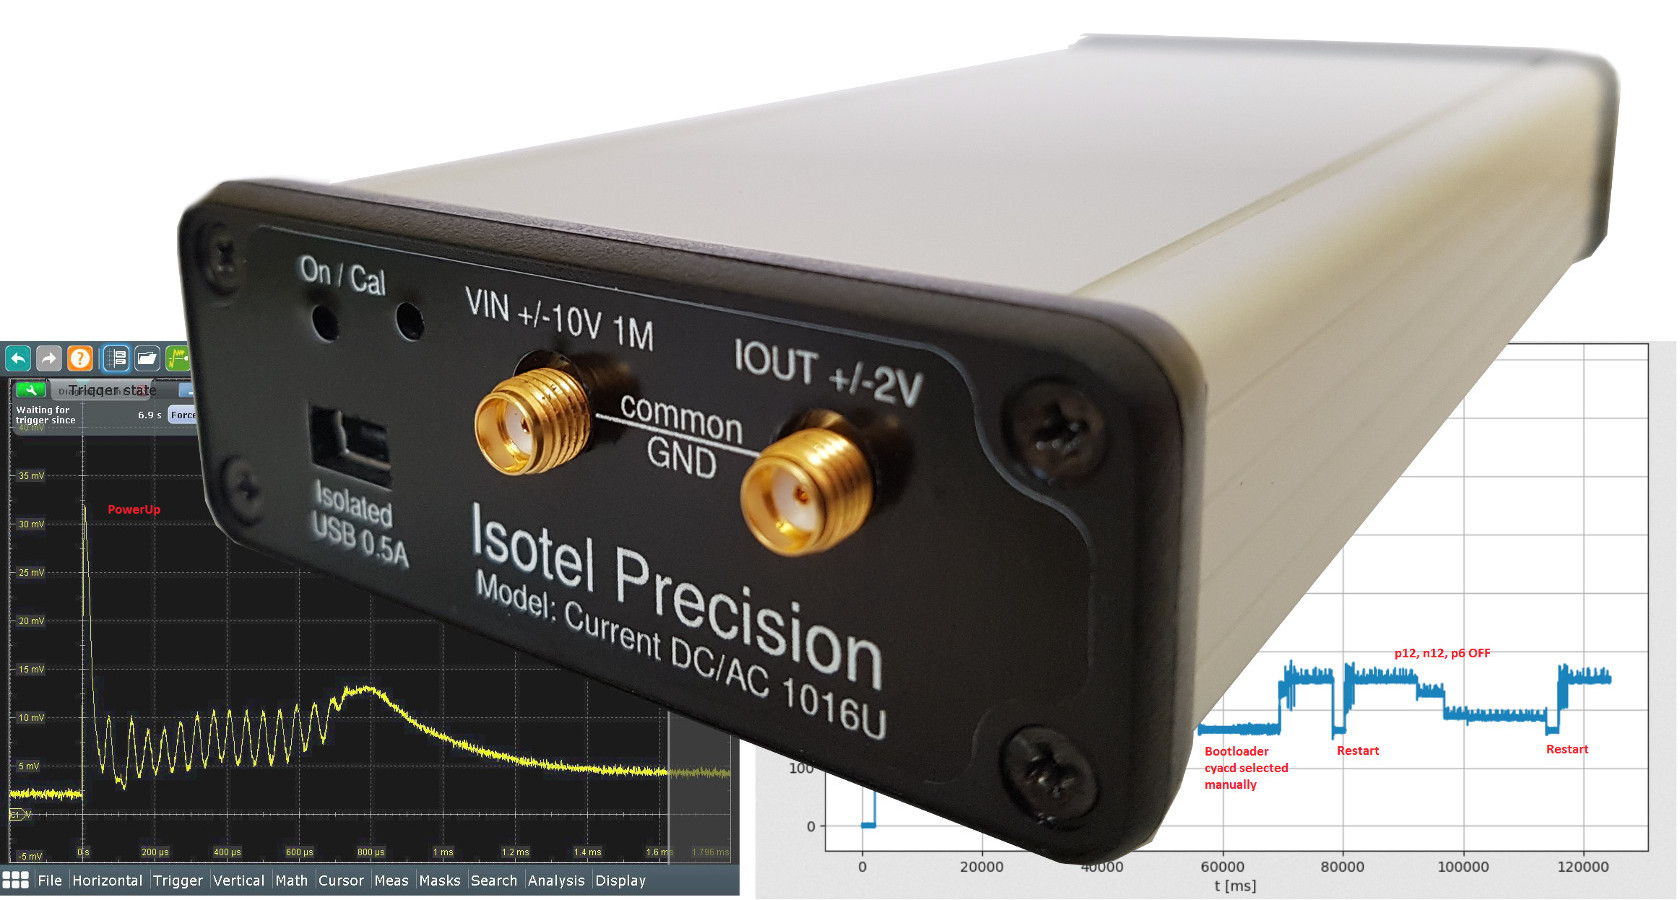 Isotel Precision Family Photos